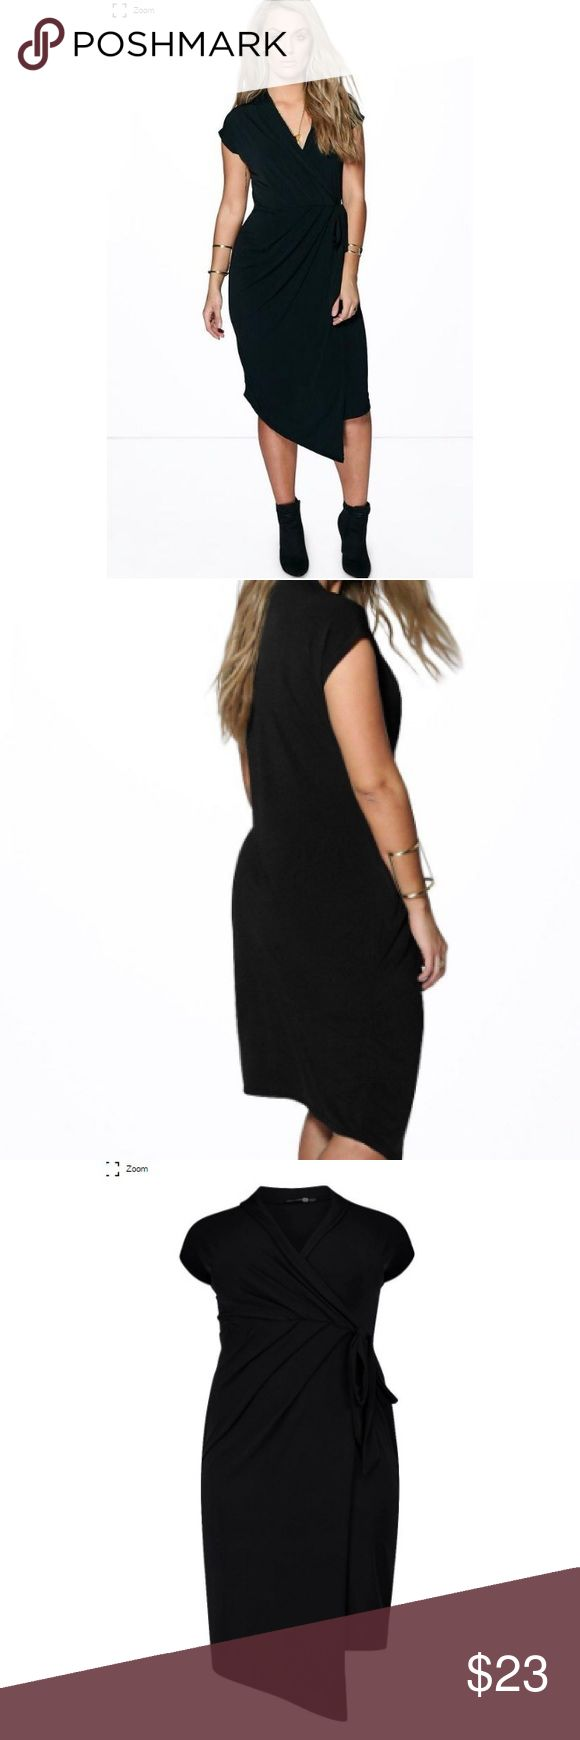 Plus Size Boohoo Front Wrap Black Dress Brand new with tags adorable front wrap boohoo black dress. Cute plus size dress that is perfect for work or a night out on the town. Boohoo Dresses Midi